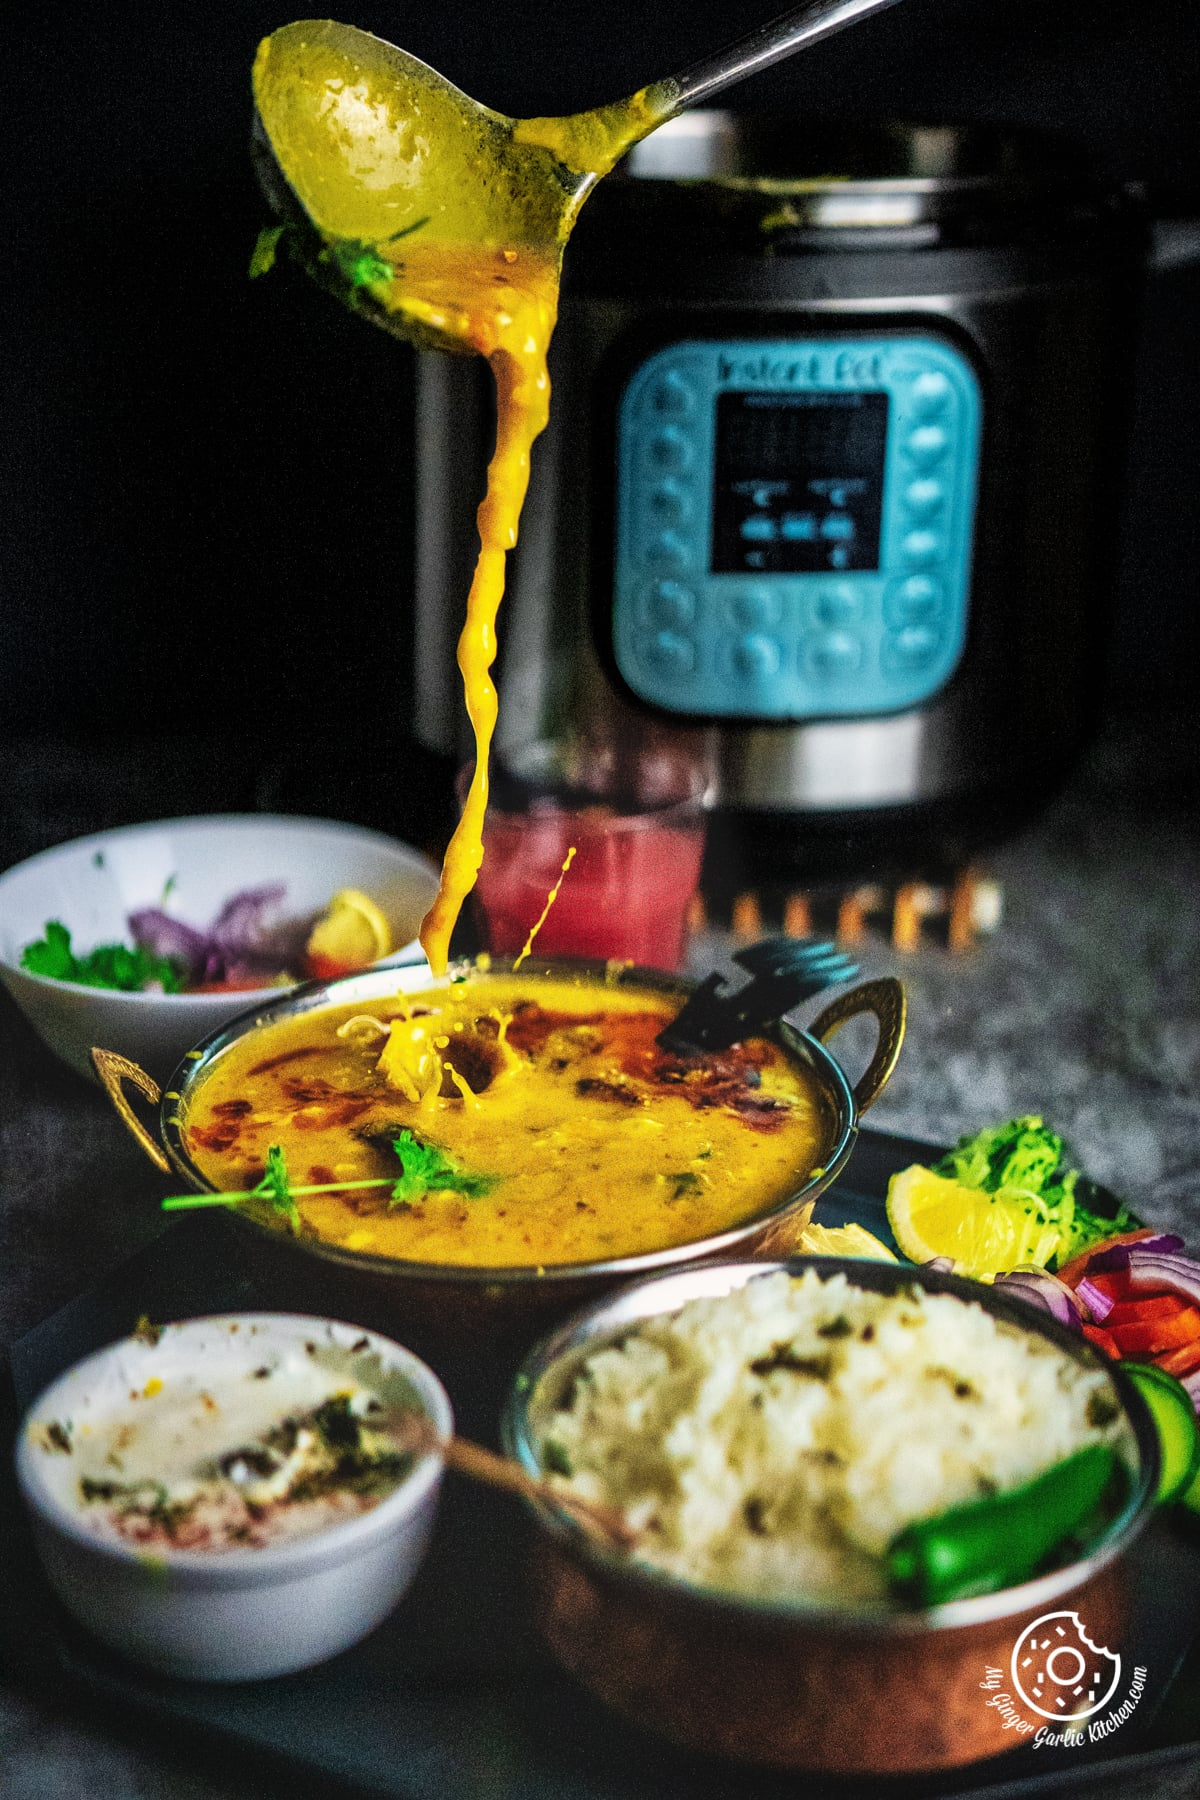 action shot of pouring Toor Dal Tadka from a ladle into a toor dal bowl